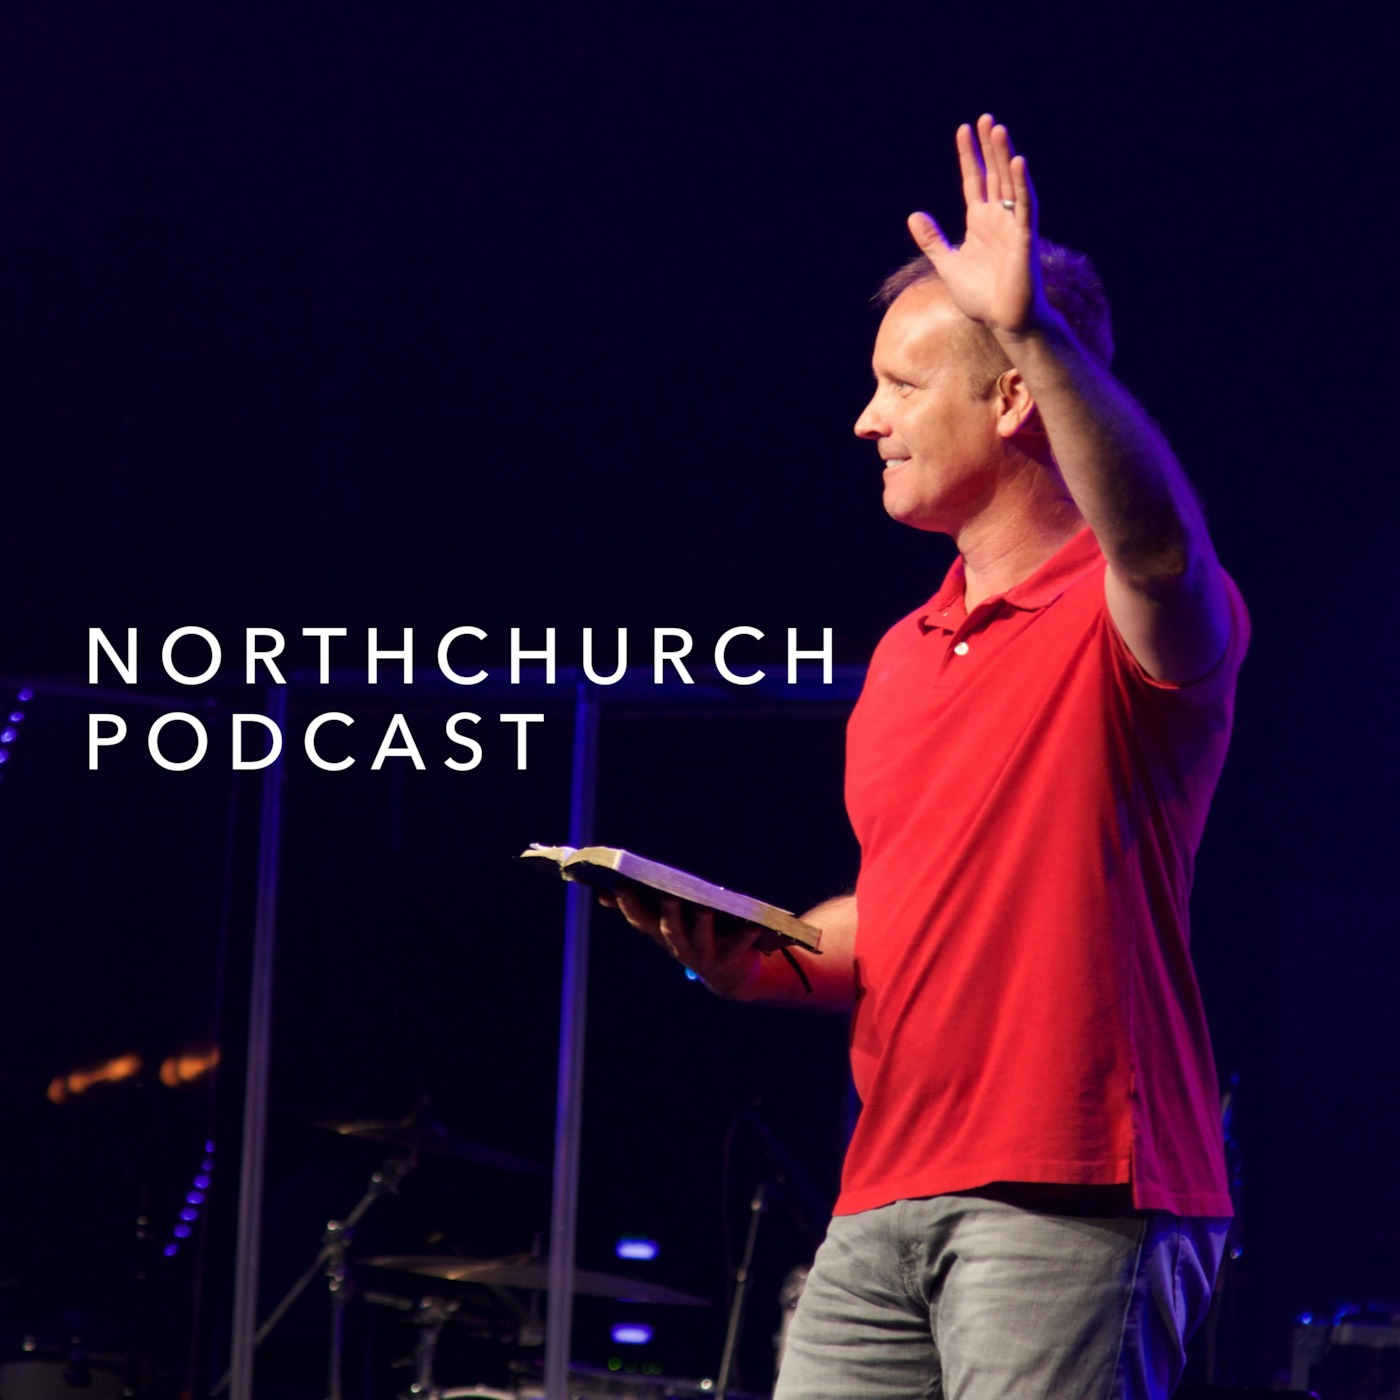 NORTHchurch Podcast with Pastor Rodney Fouts